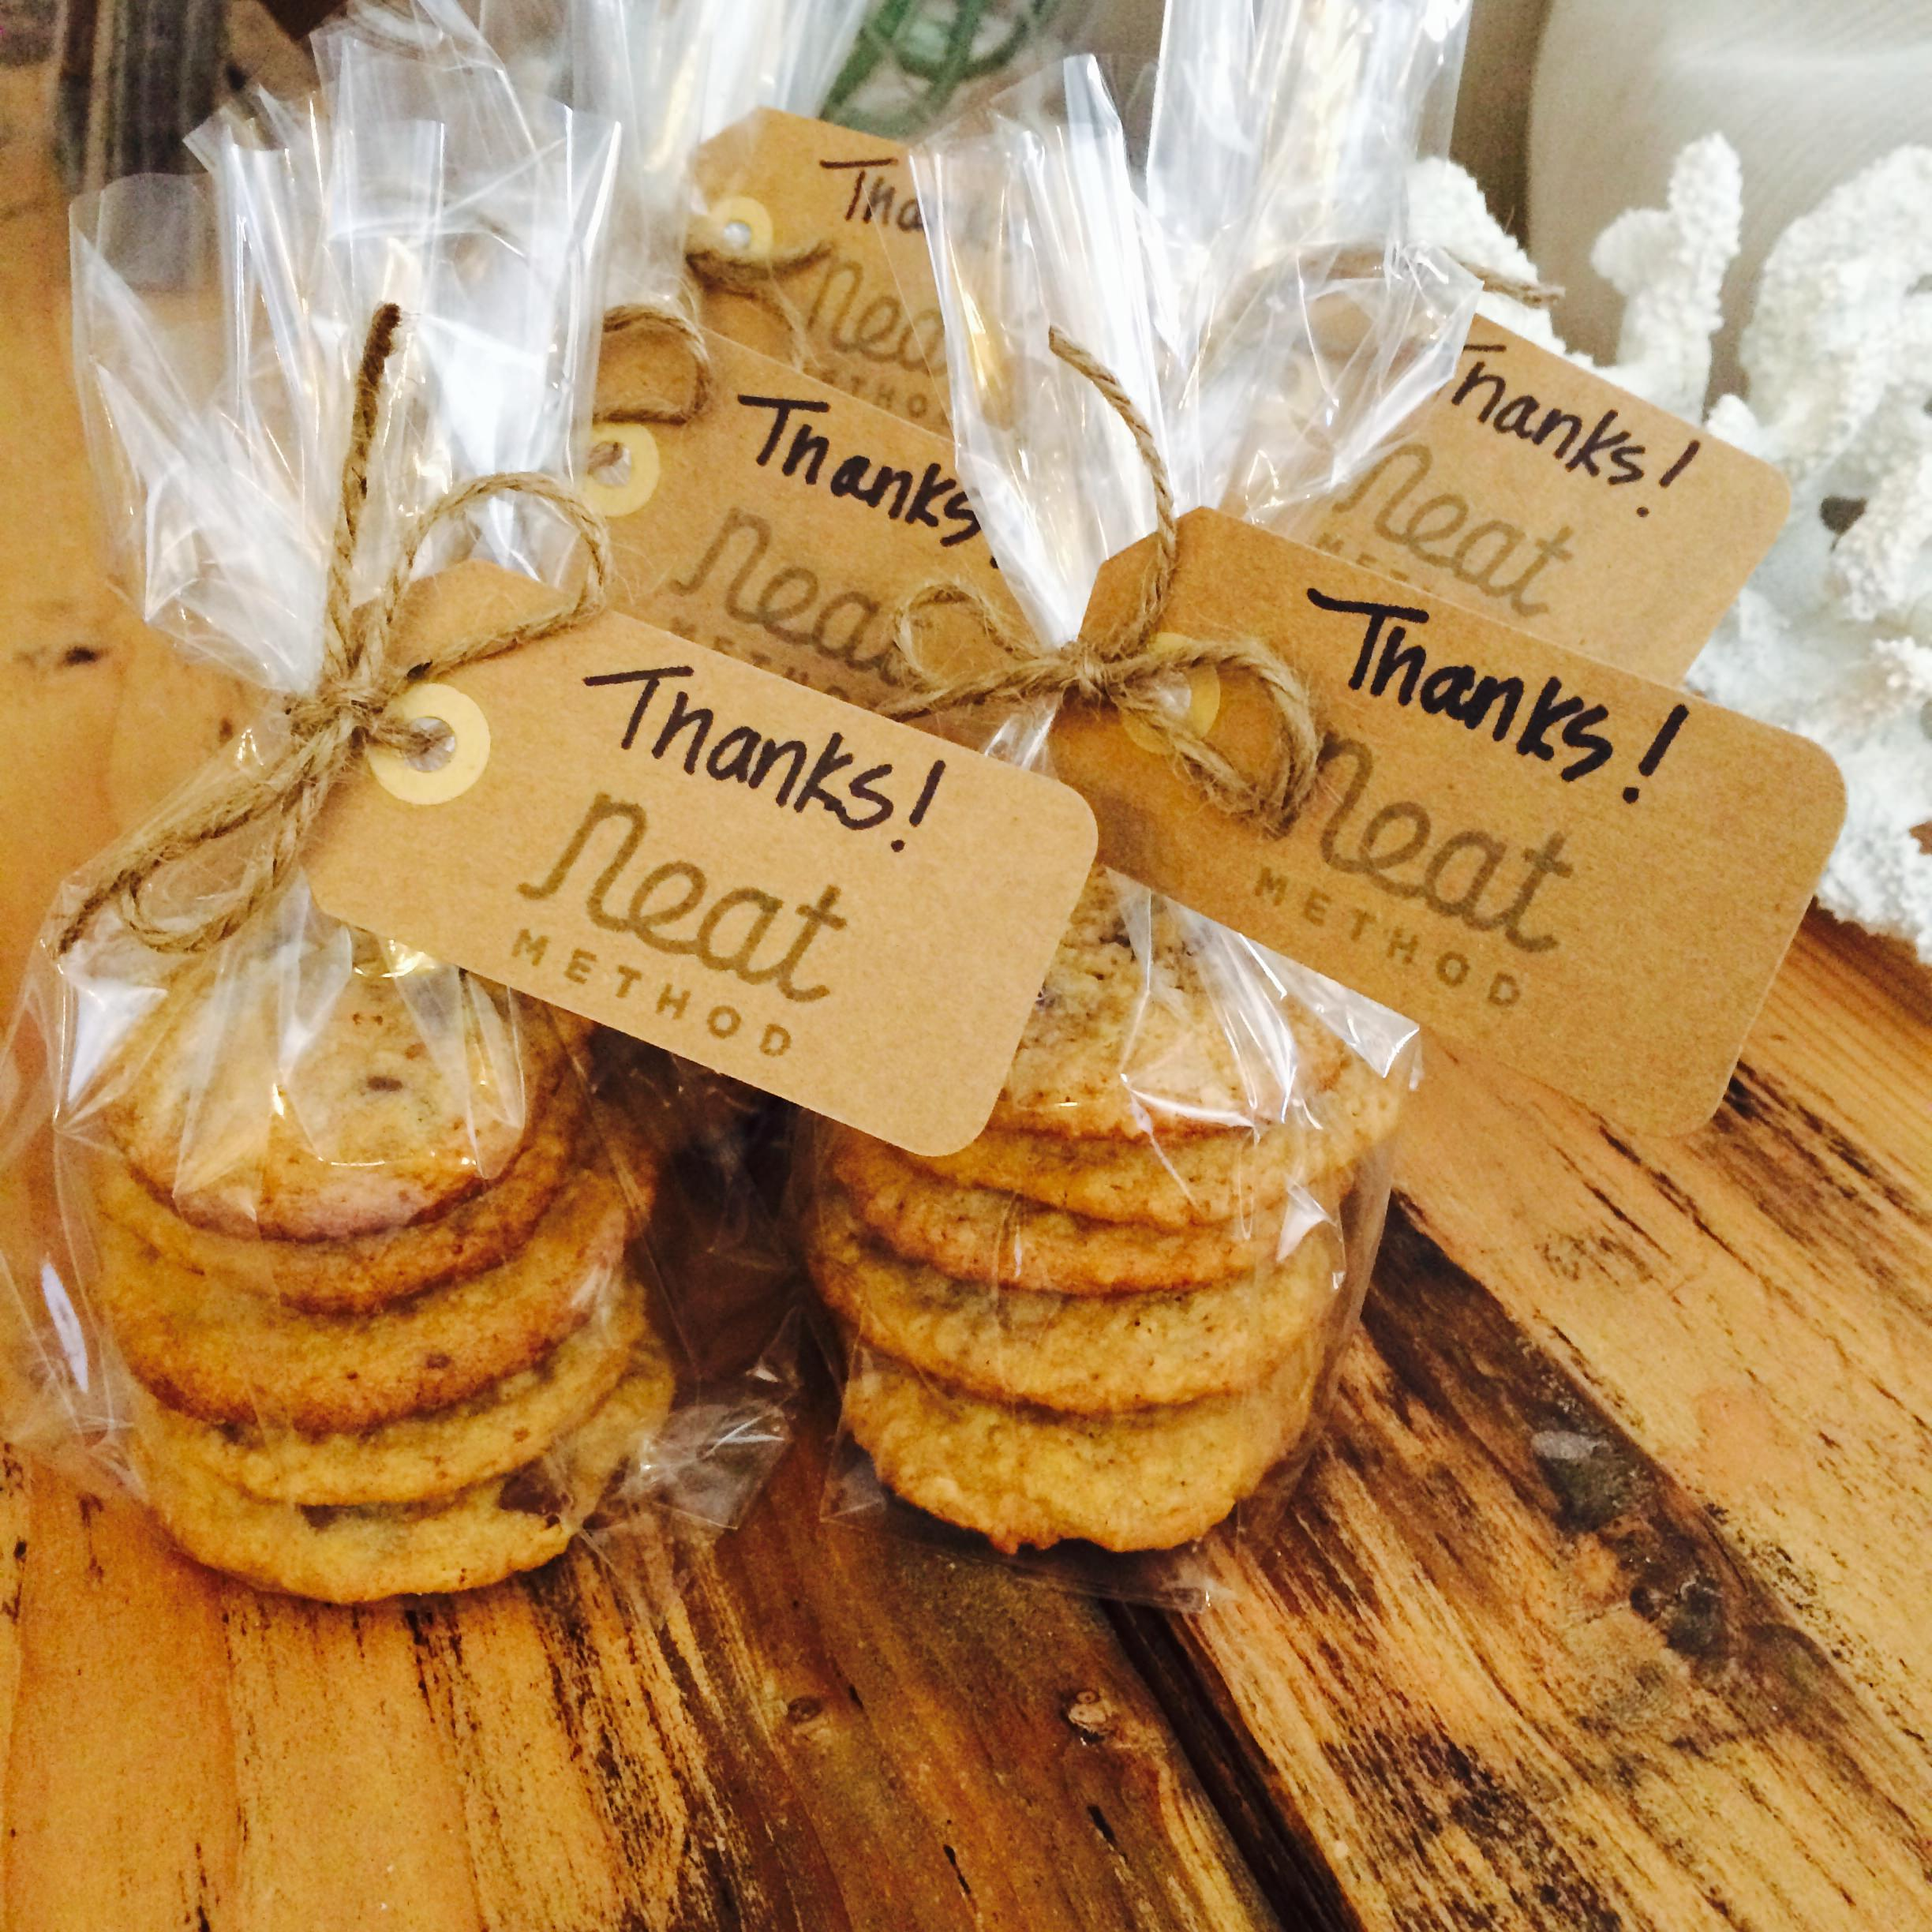 mika perry, neat method, neat scottsdale, scottsdale, home organizer, home organizer scottsdale, cookies, cookie recipe, packaged cookies